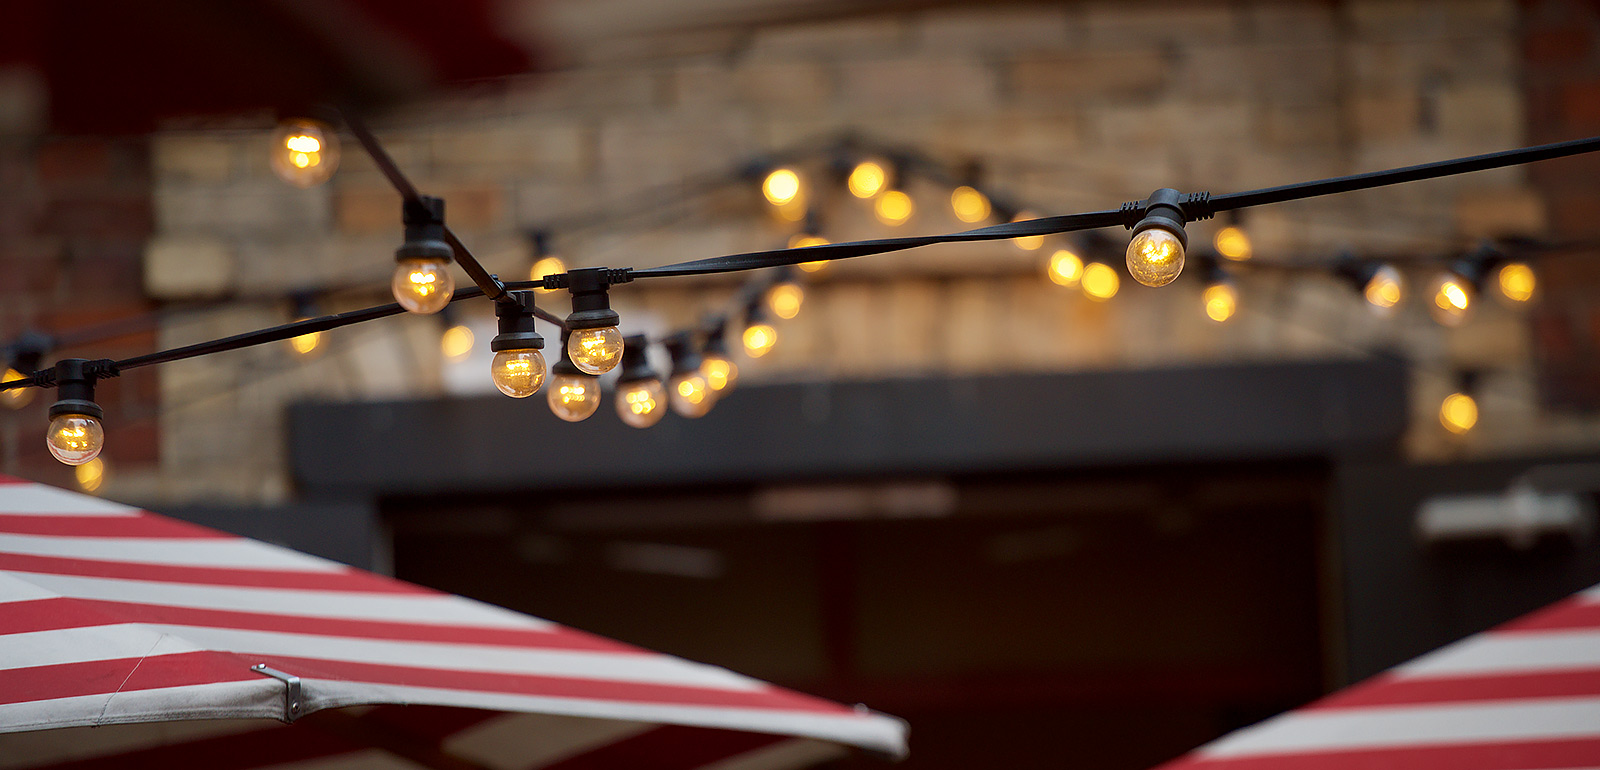 Outdoor Festoon Lighting At Trunk Diner